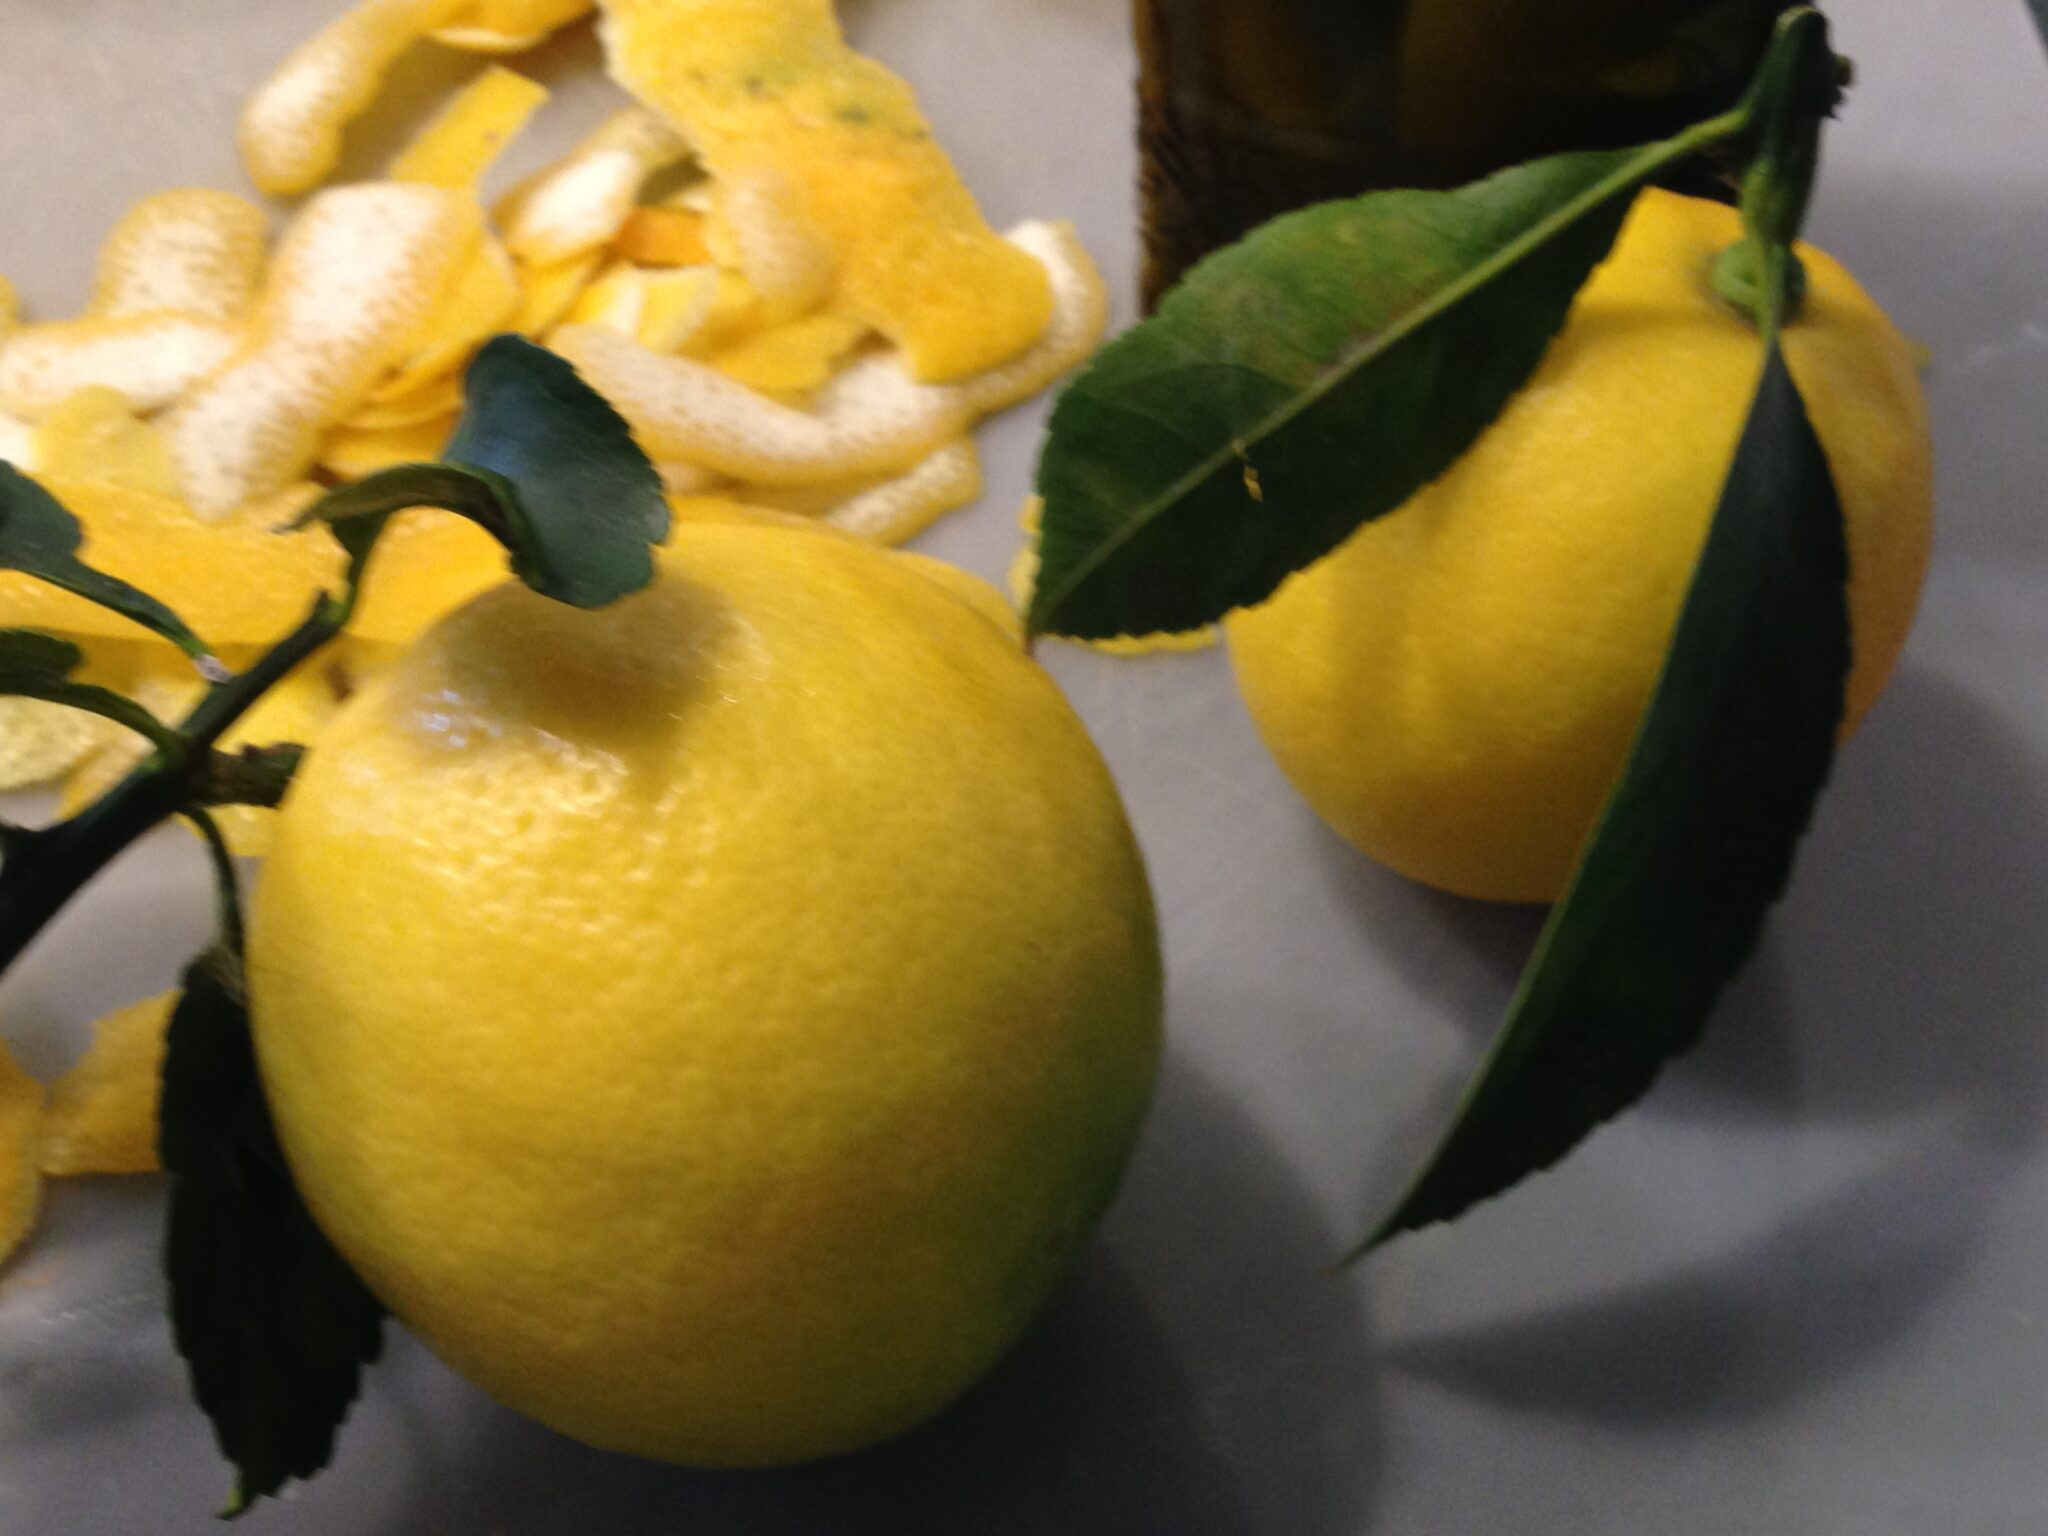 When You Have Lemons, Make Limoncello